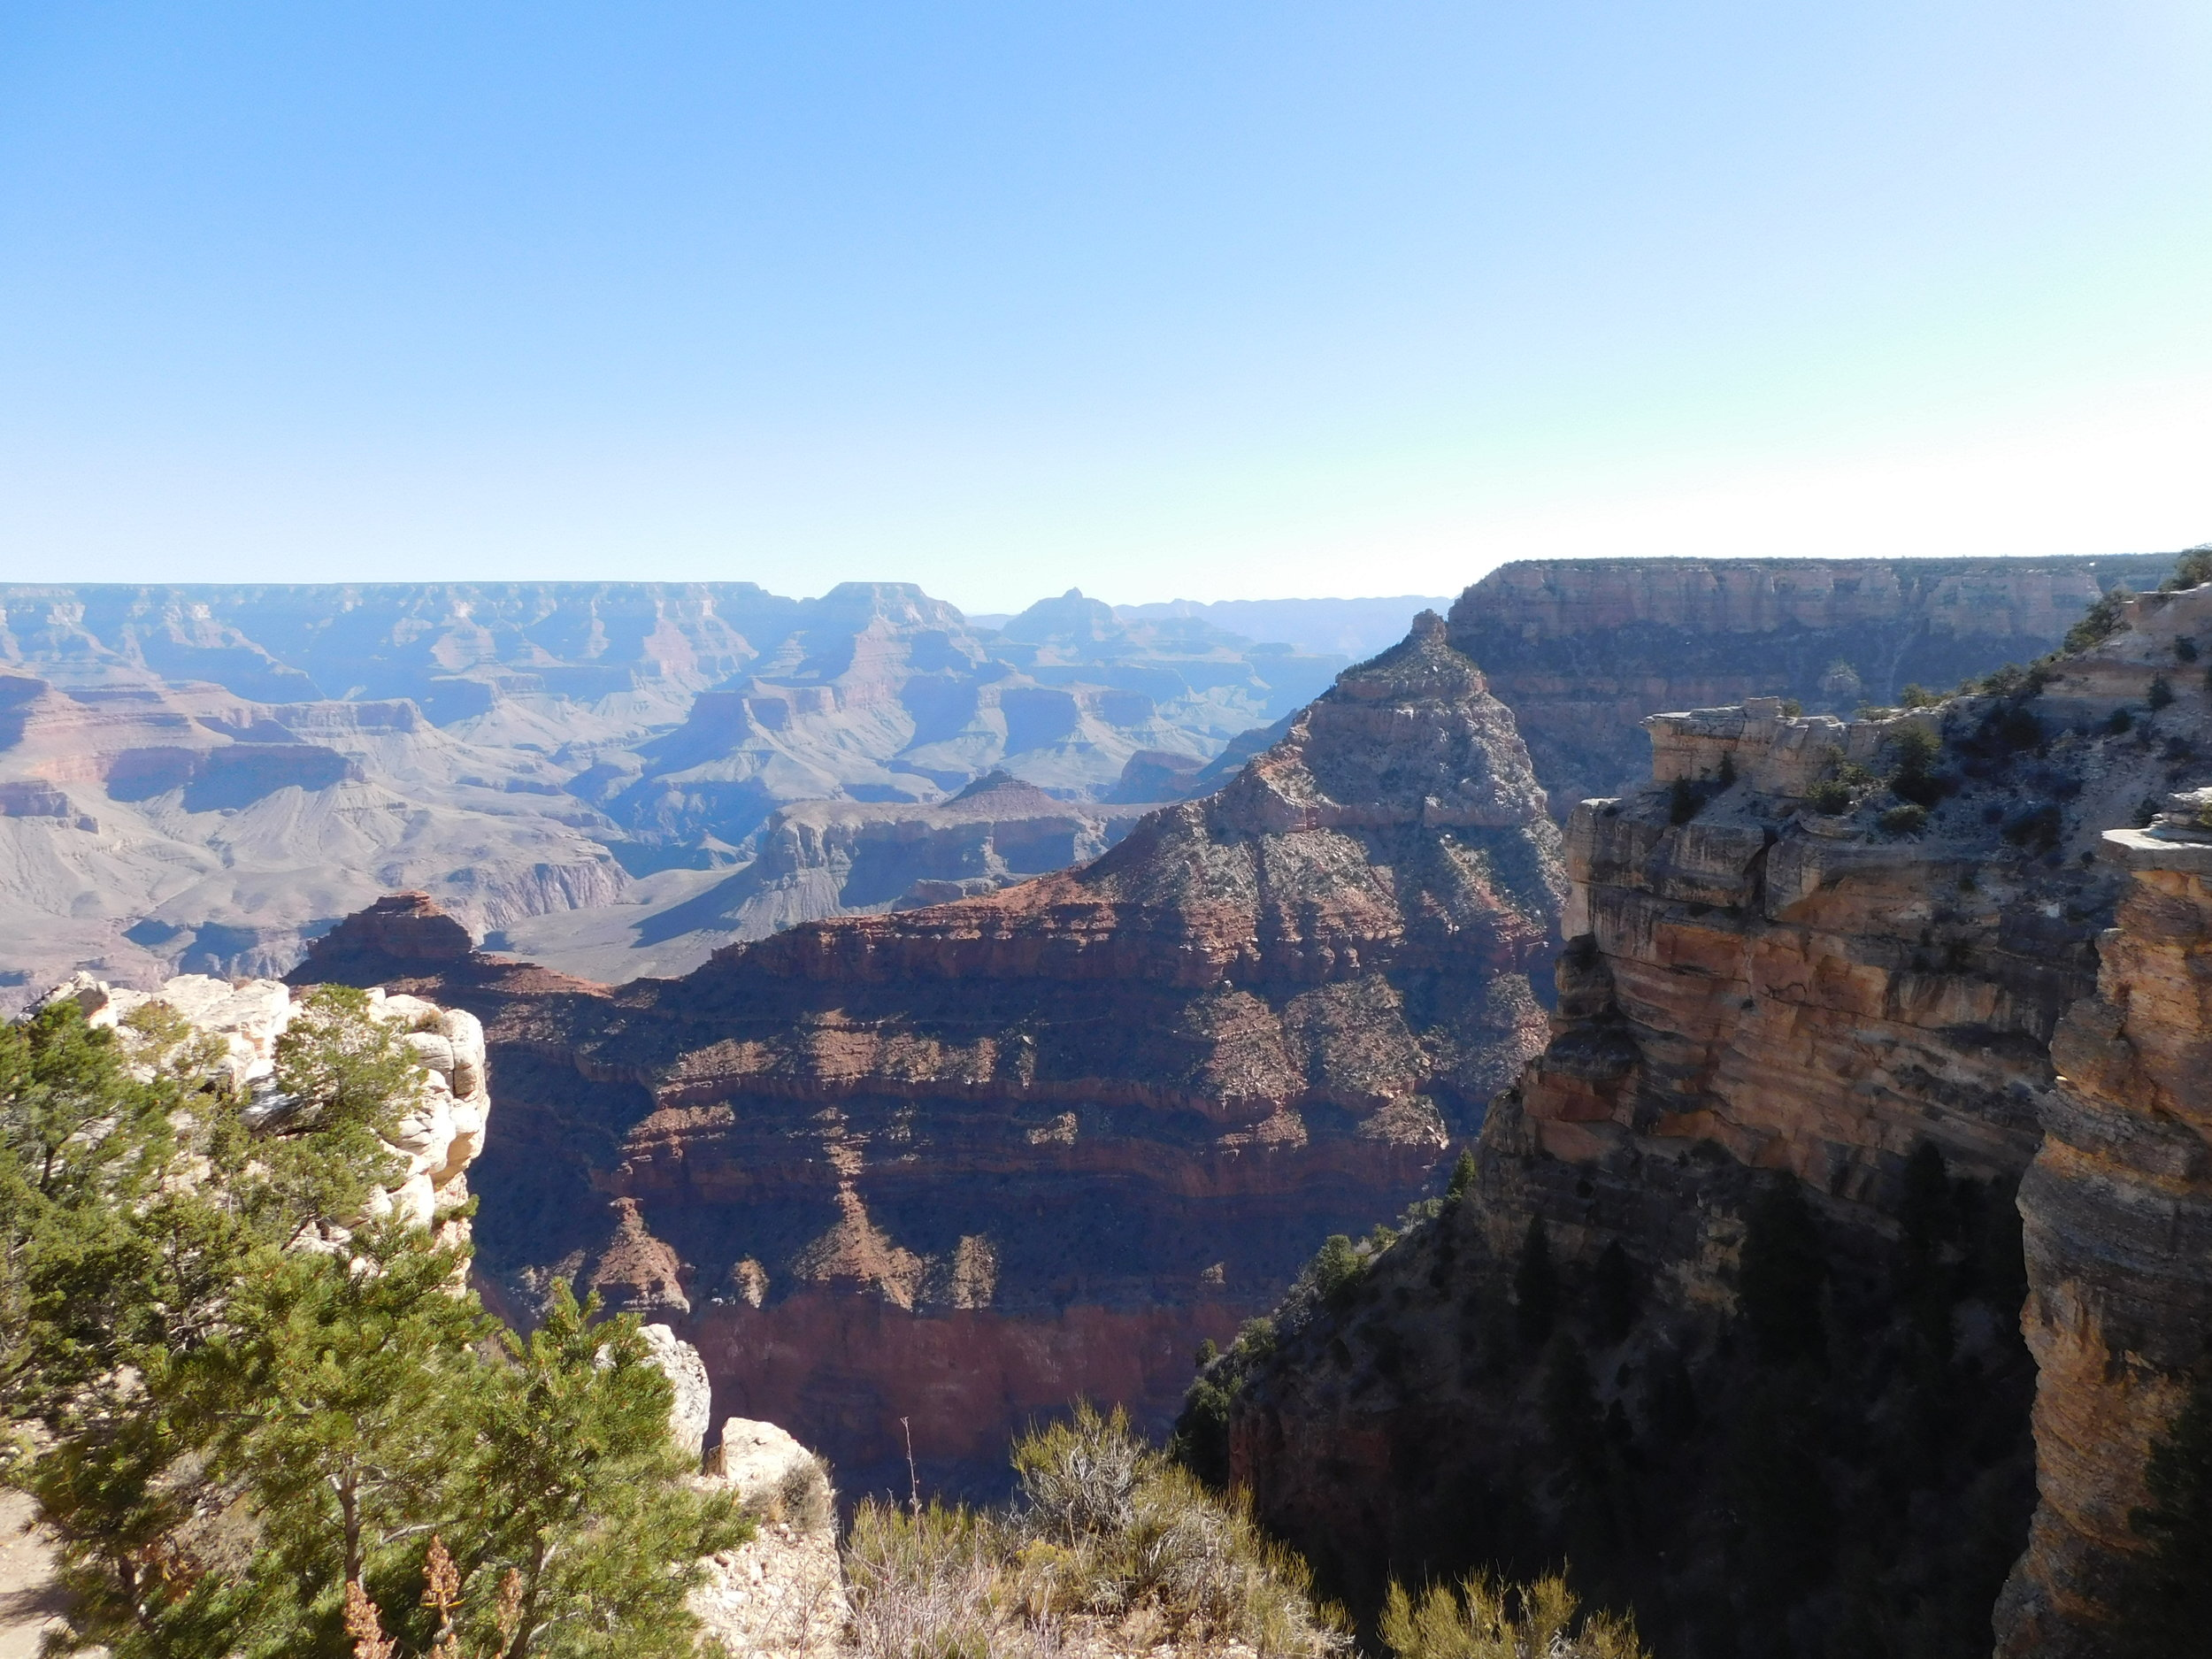 Our first view of the Grand Canyon! Photo credit Josiah Macy